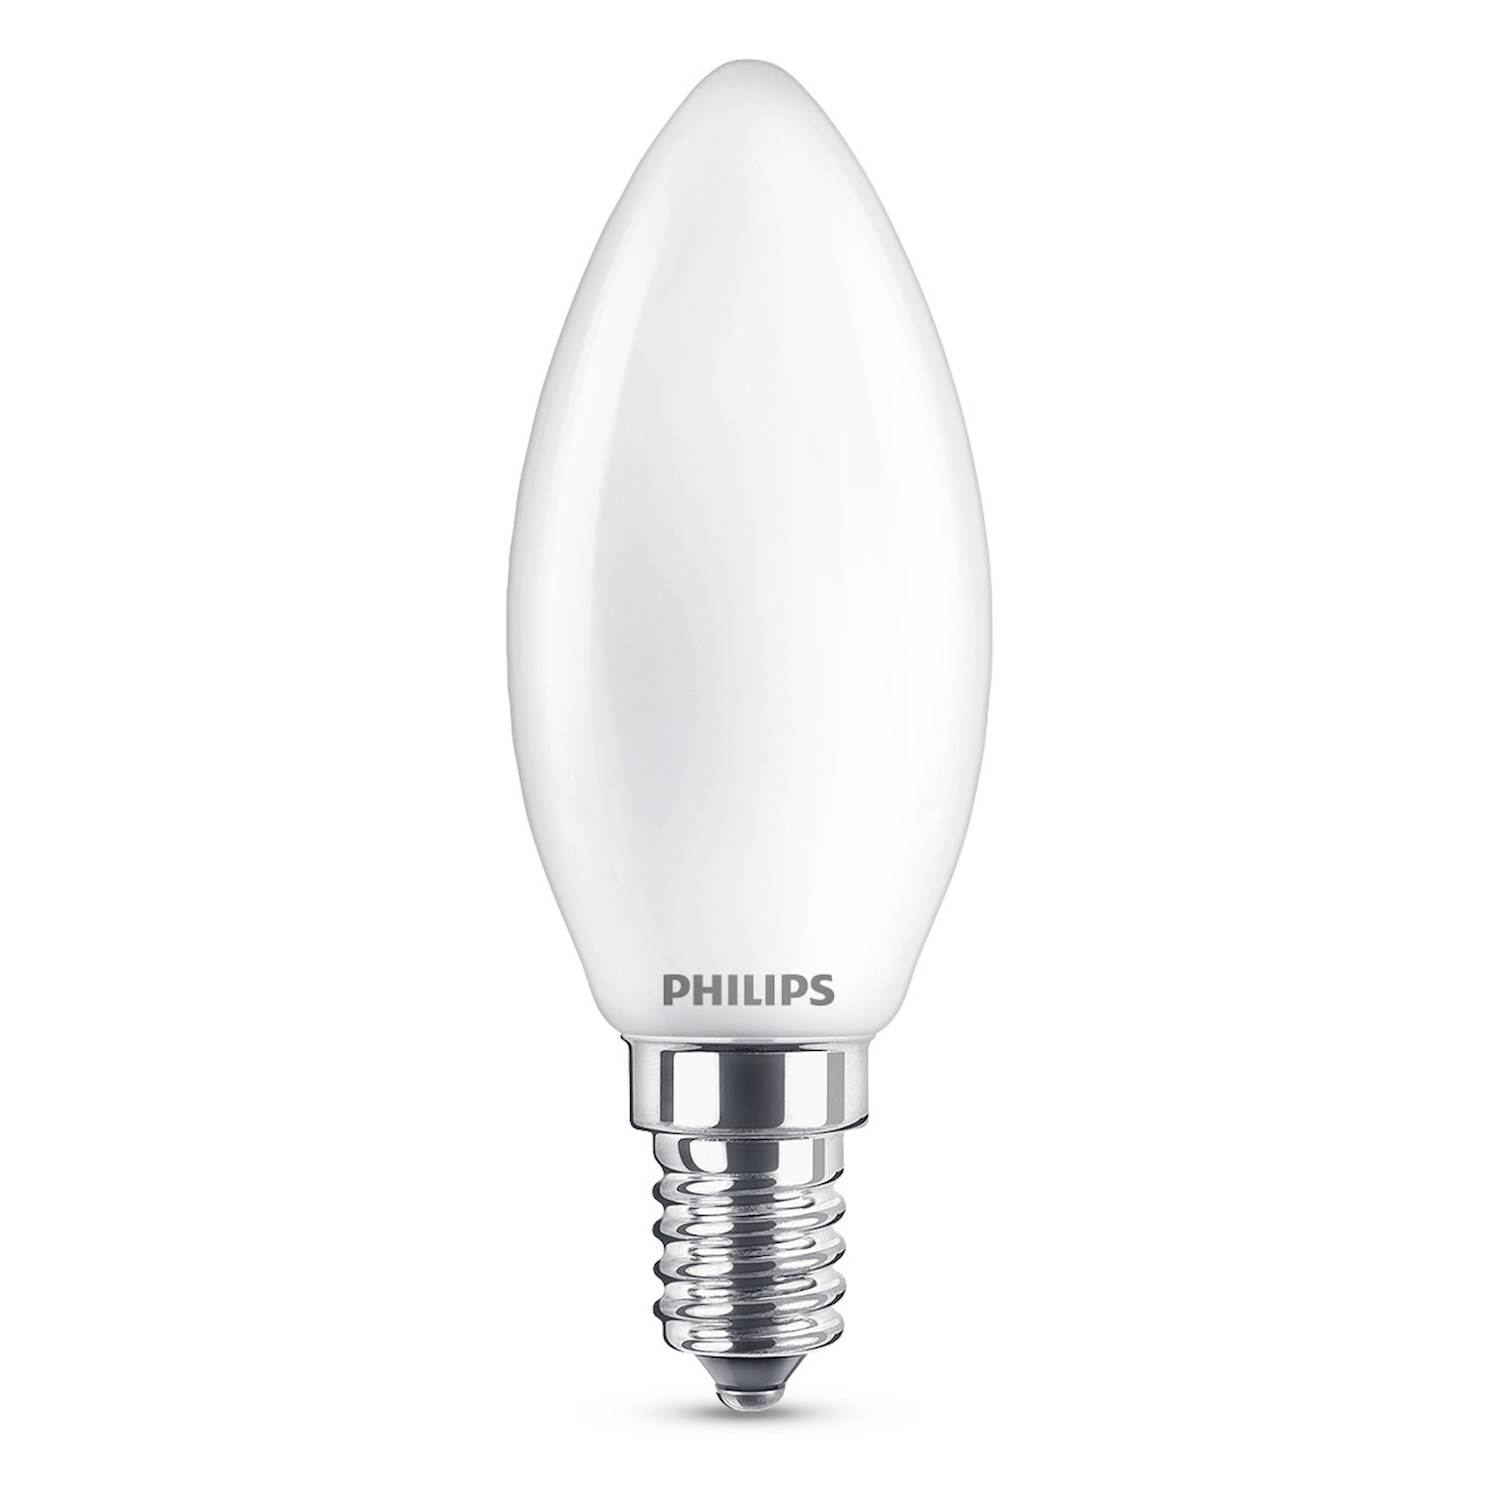 Philips LEDCL KRON E14 2,2W VV FR ND